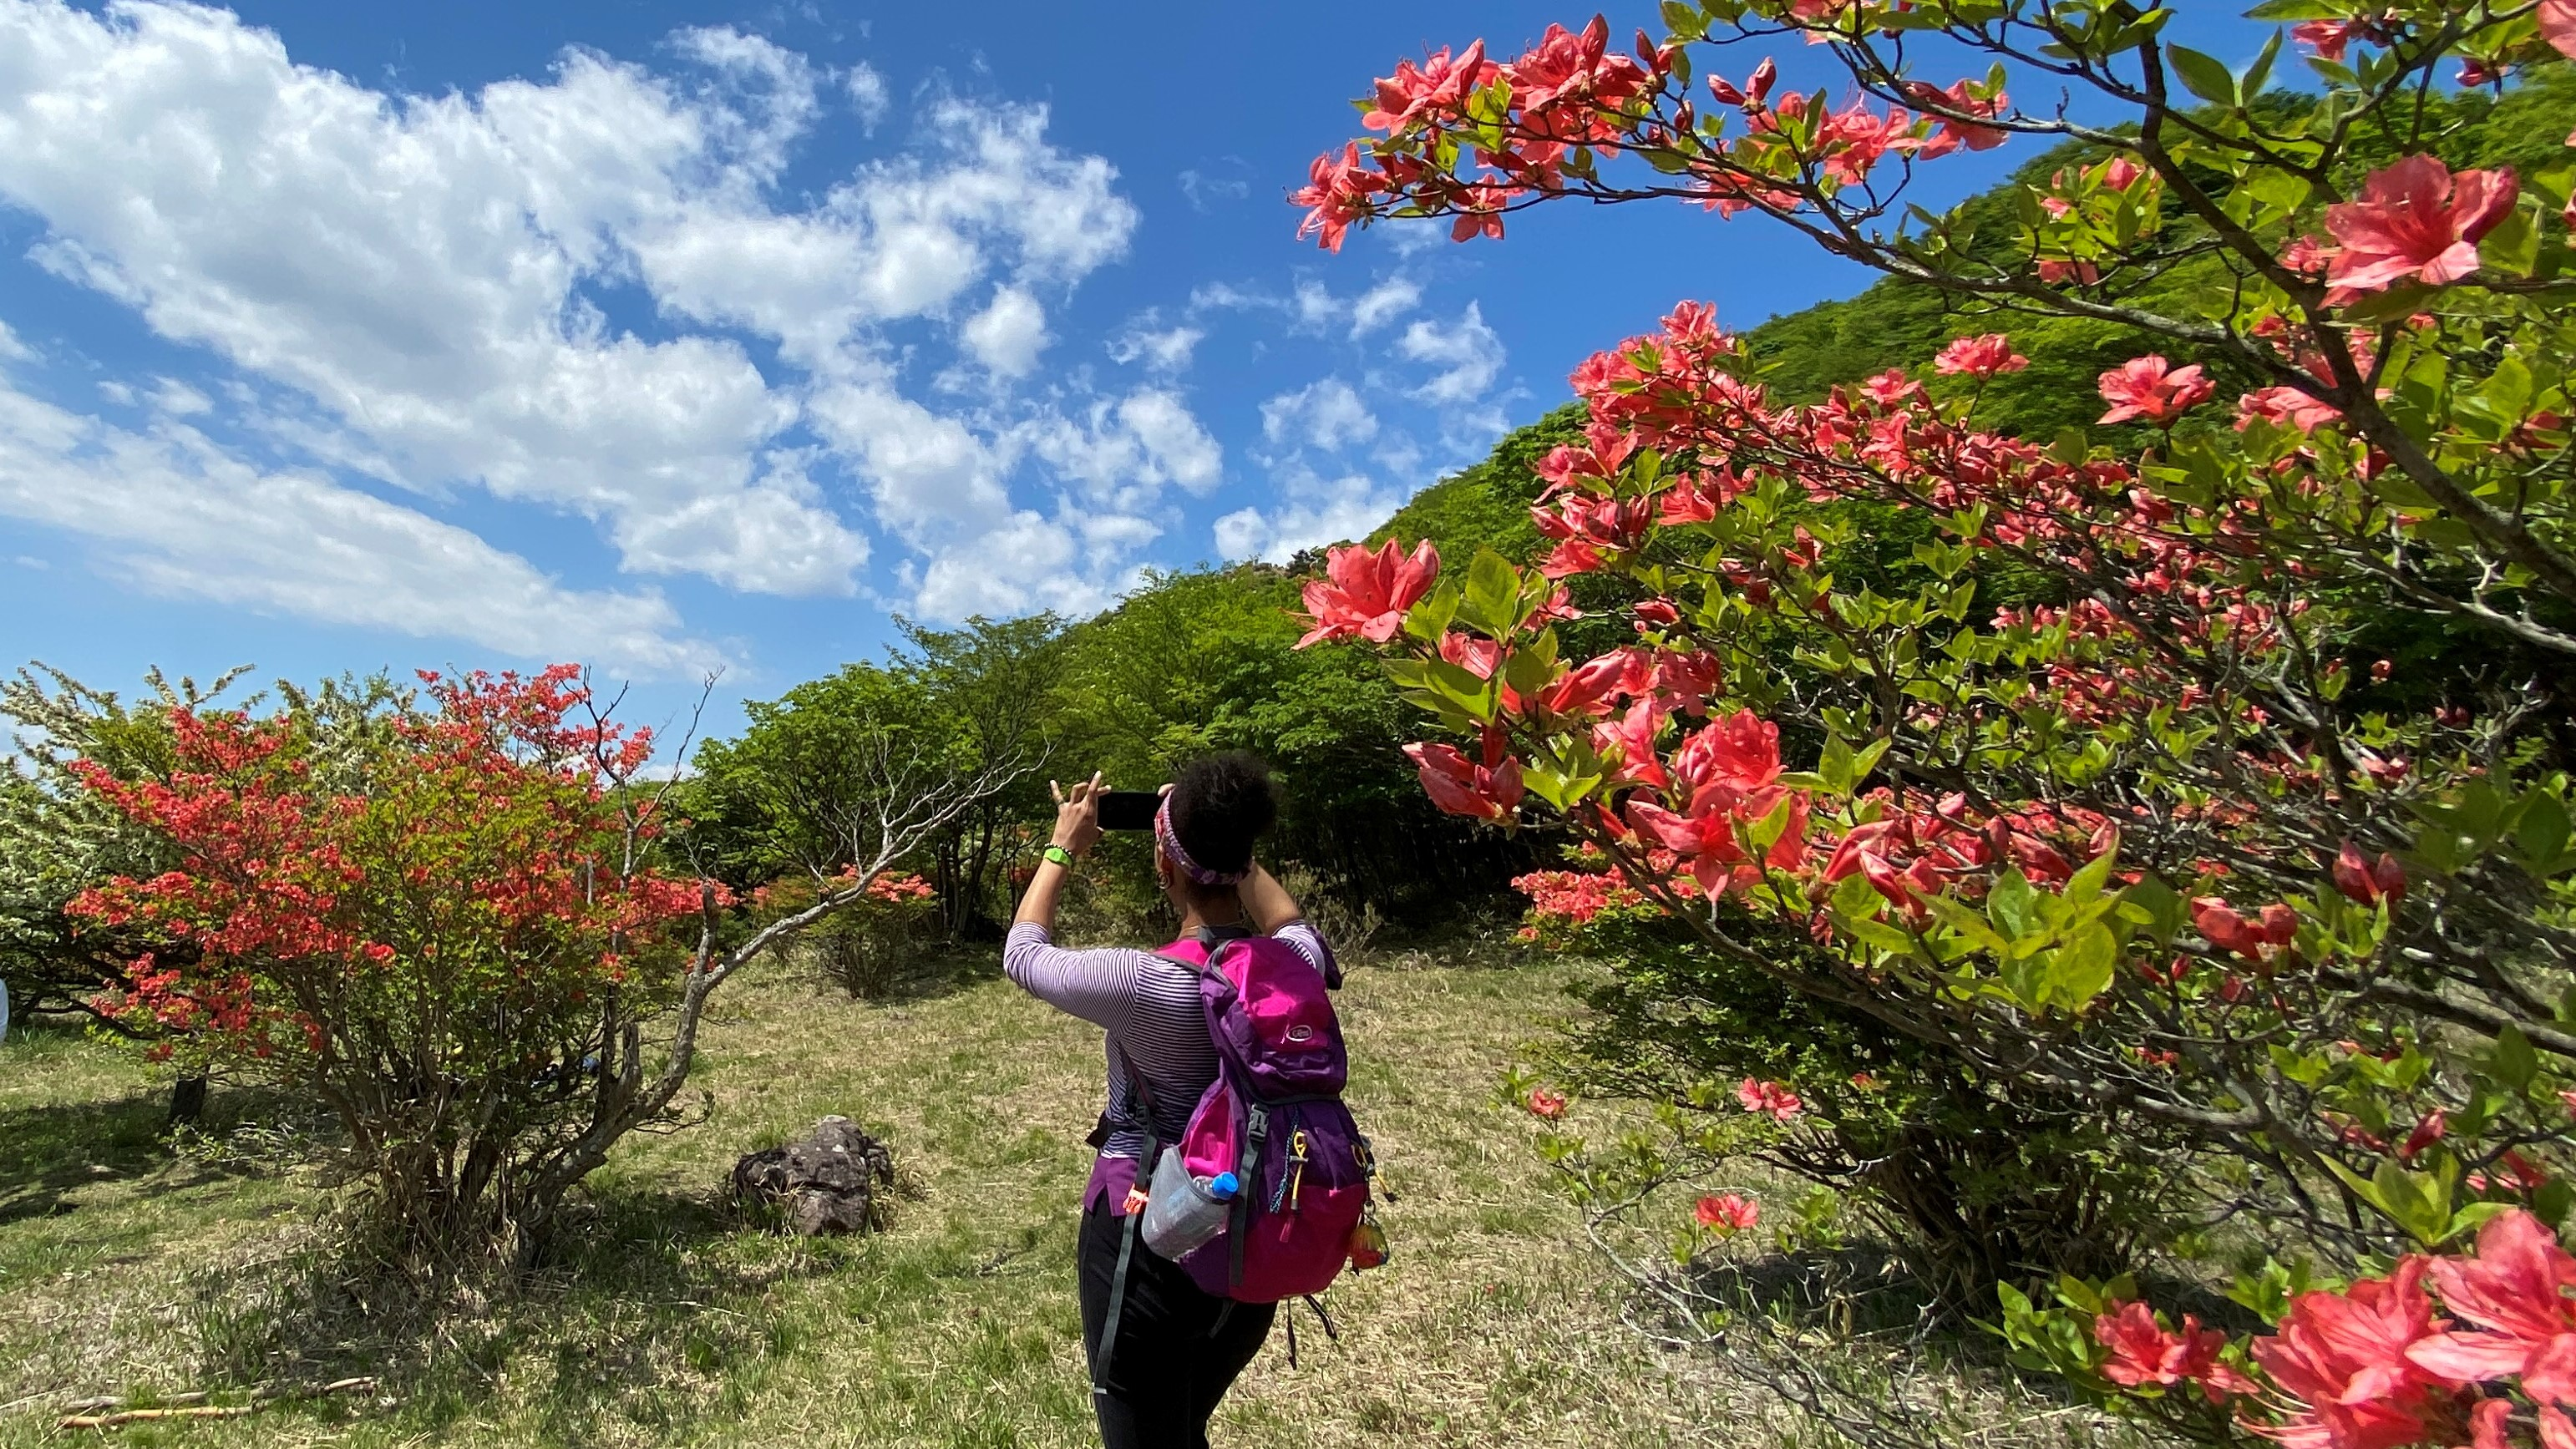 A hiker takes a picture of an azalea bush with her smartphone